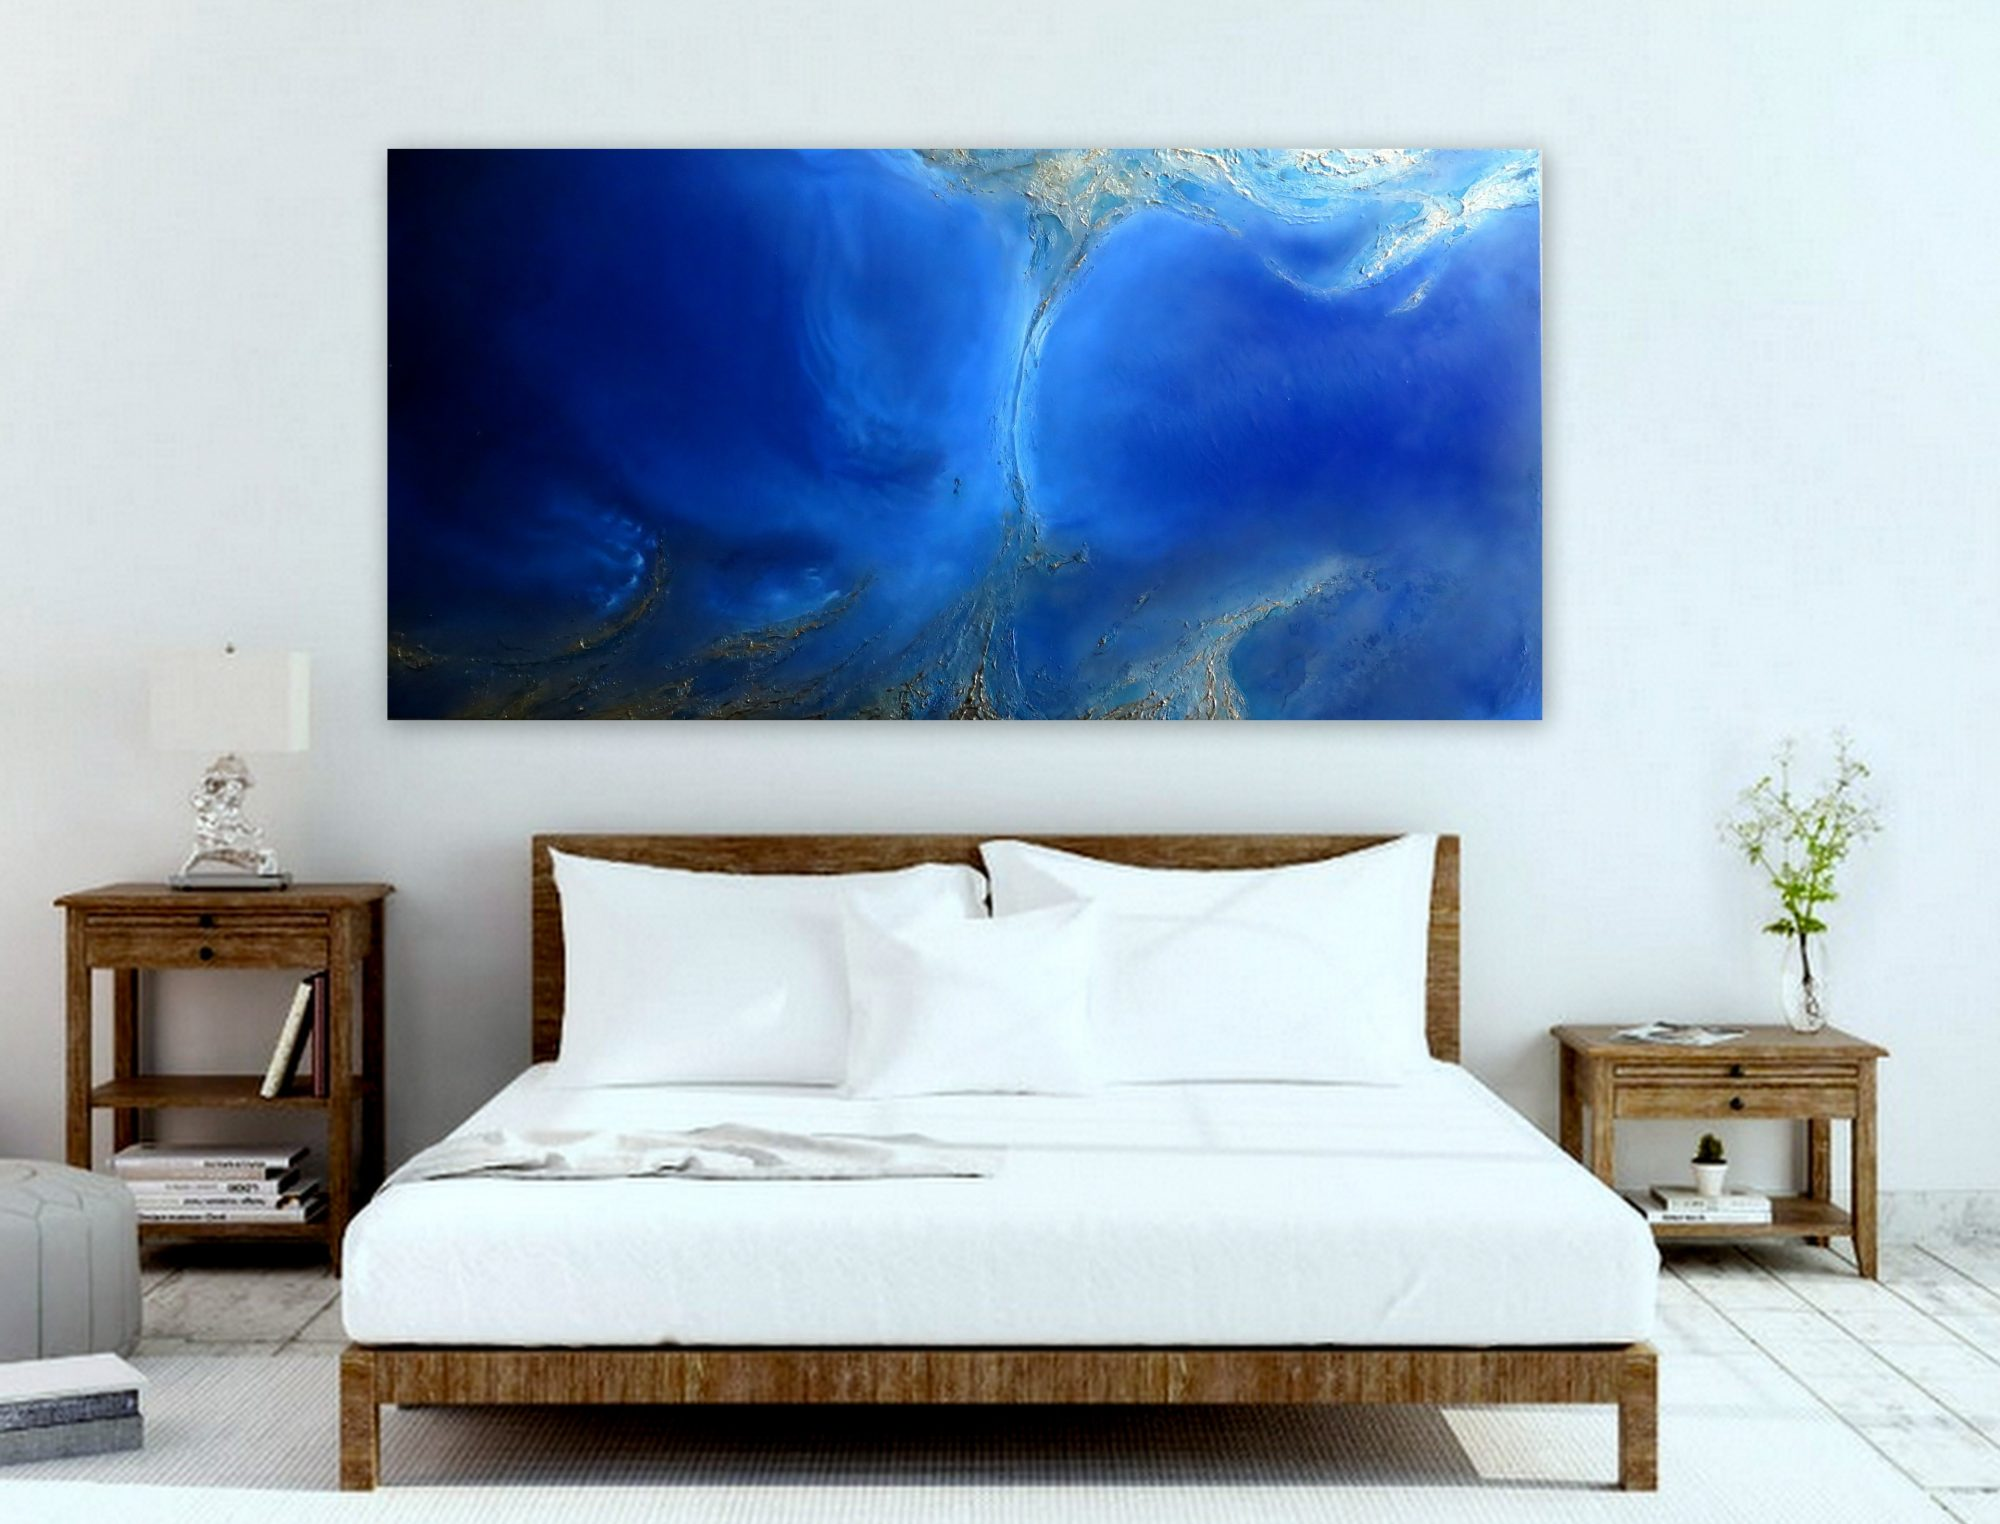 Blue Waters Painting By Petra Meikle De Vlas.jpg4